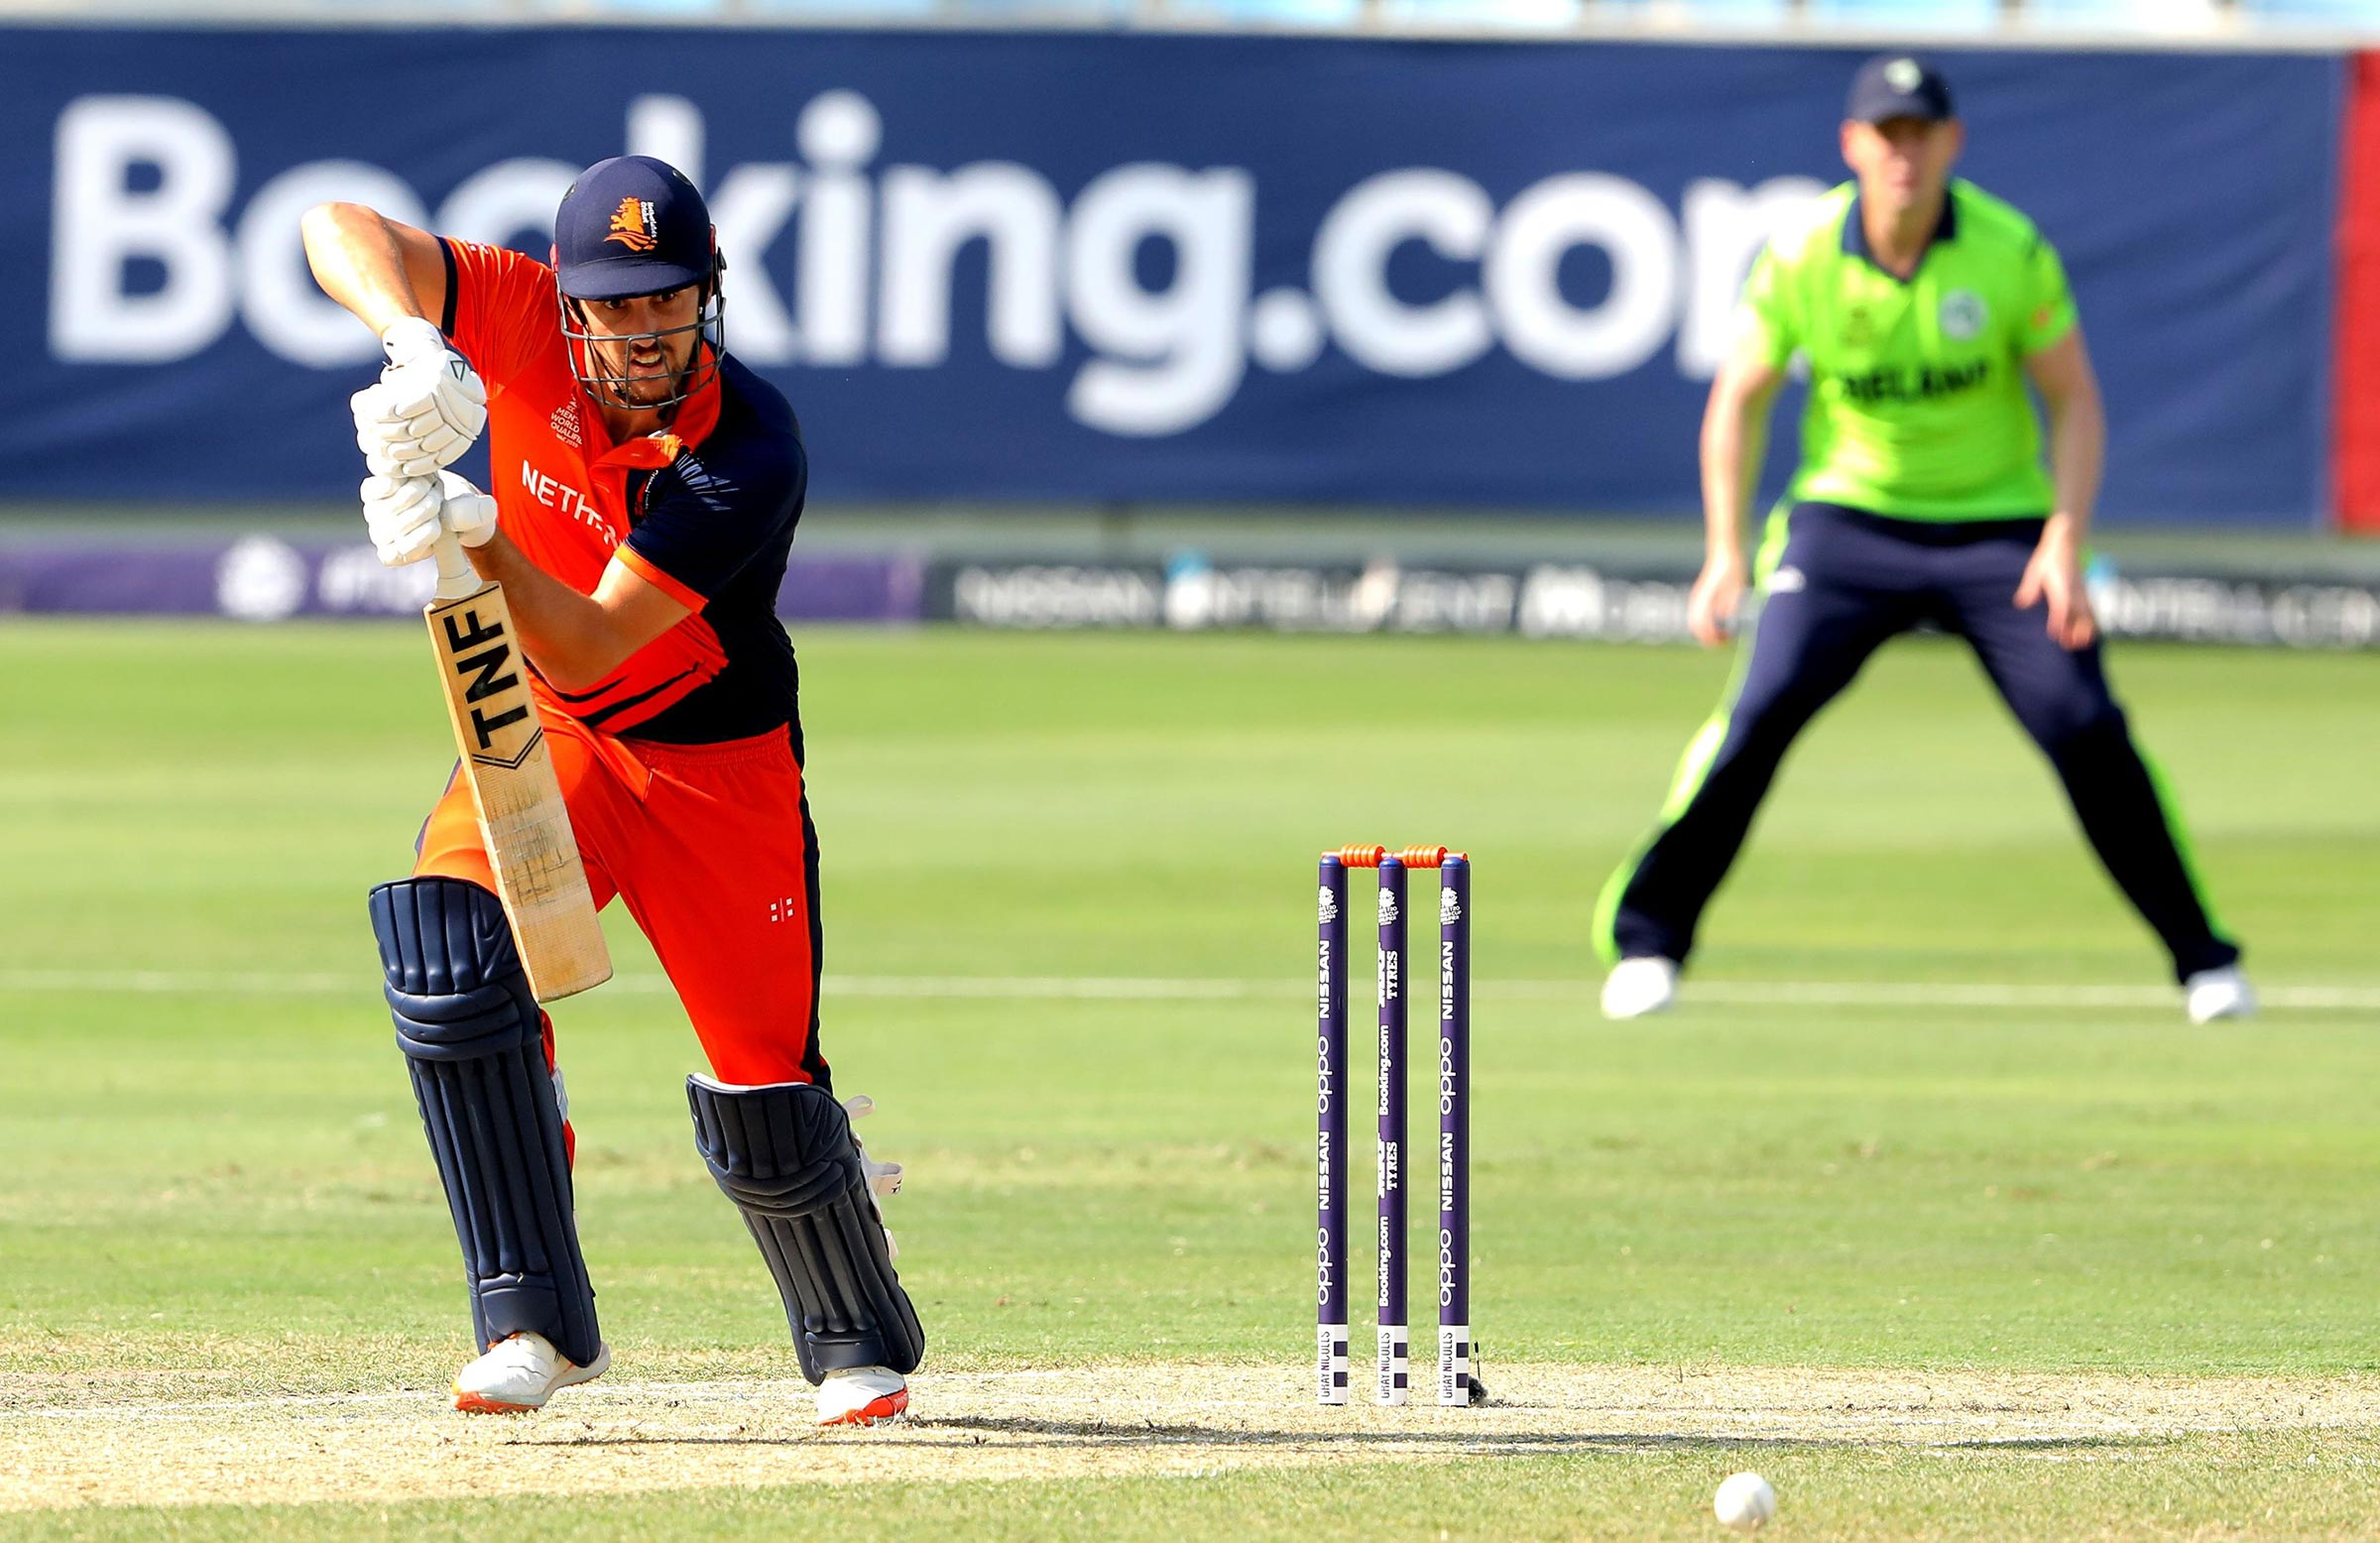 Cooper is one of the Dutch team's most reliable batsmen // Getty